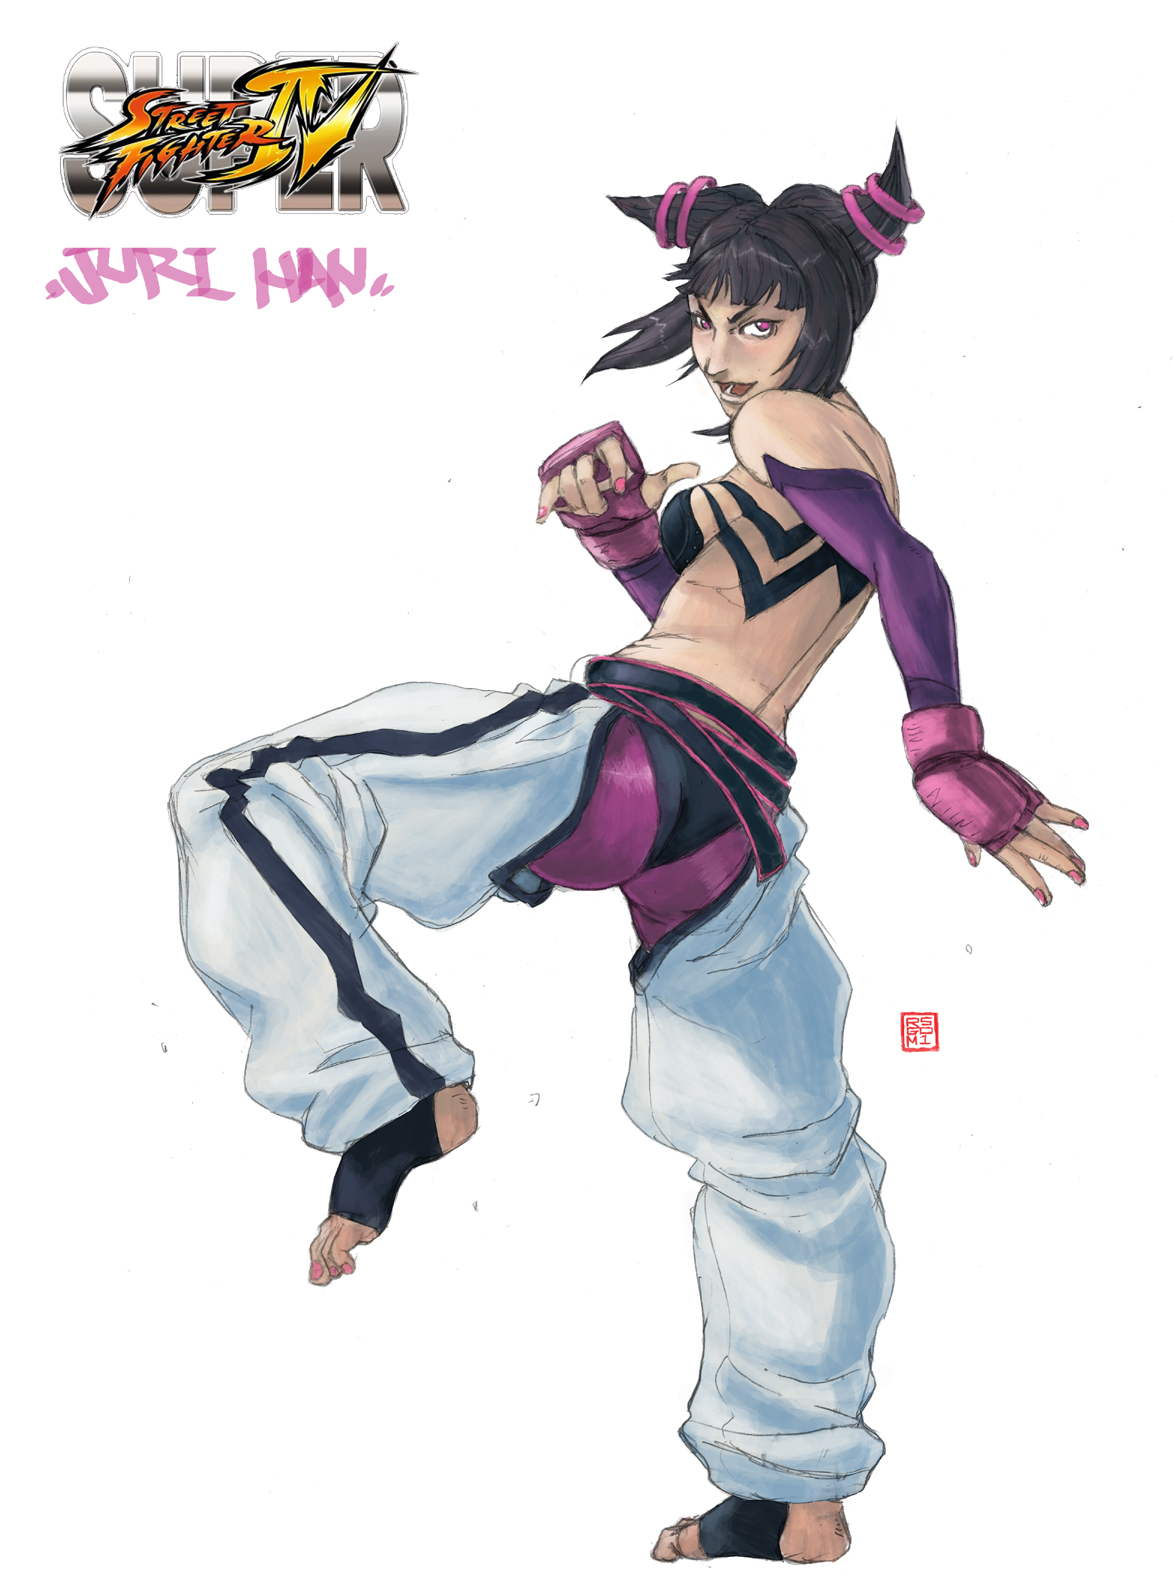 Juri SUPER STREET FIGHTER 4 by rgm501